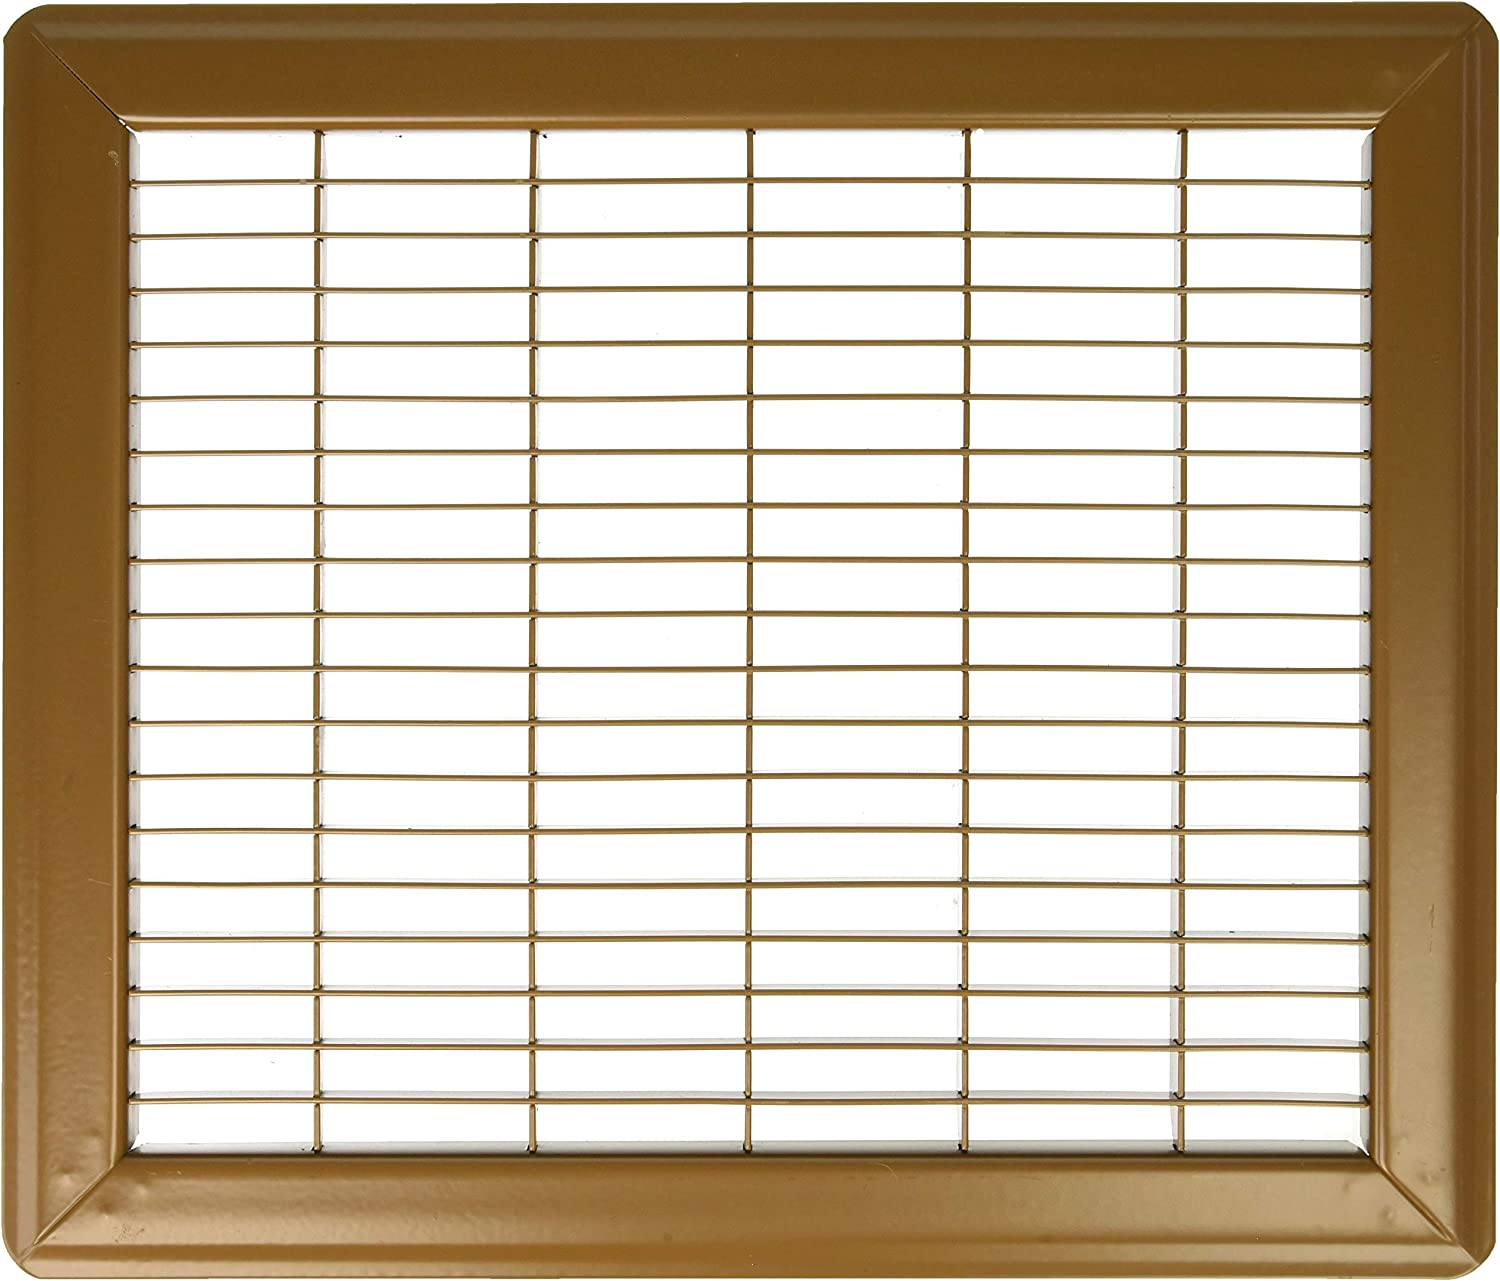 IMPERIAL MANUFACTURING RG0625 10X12IN floor grille